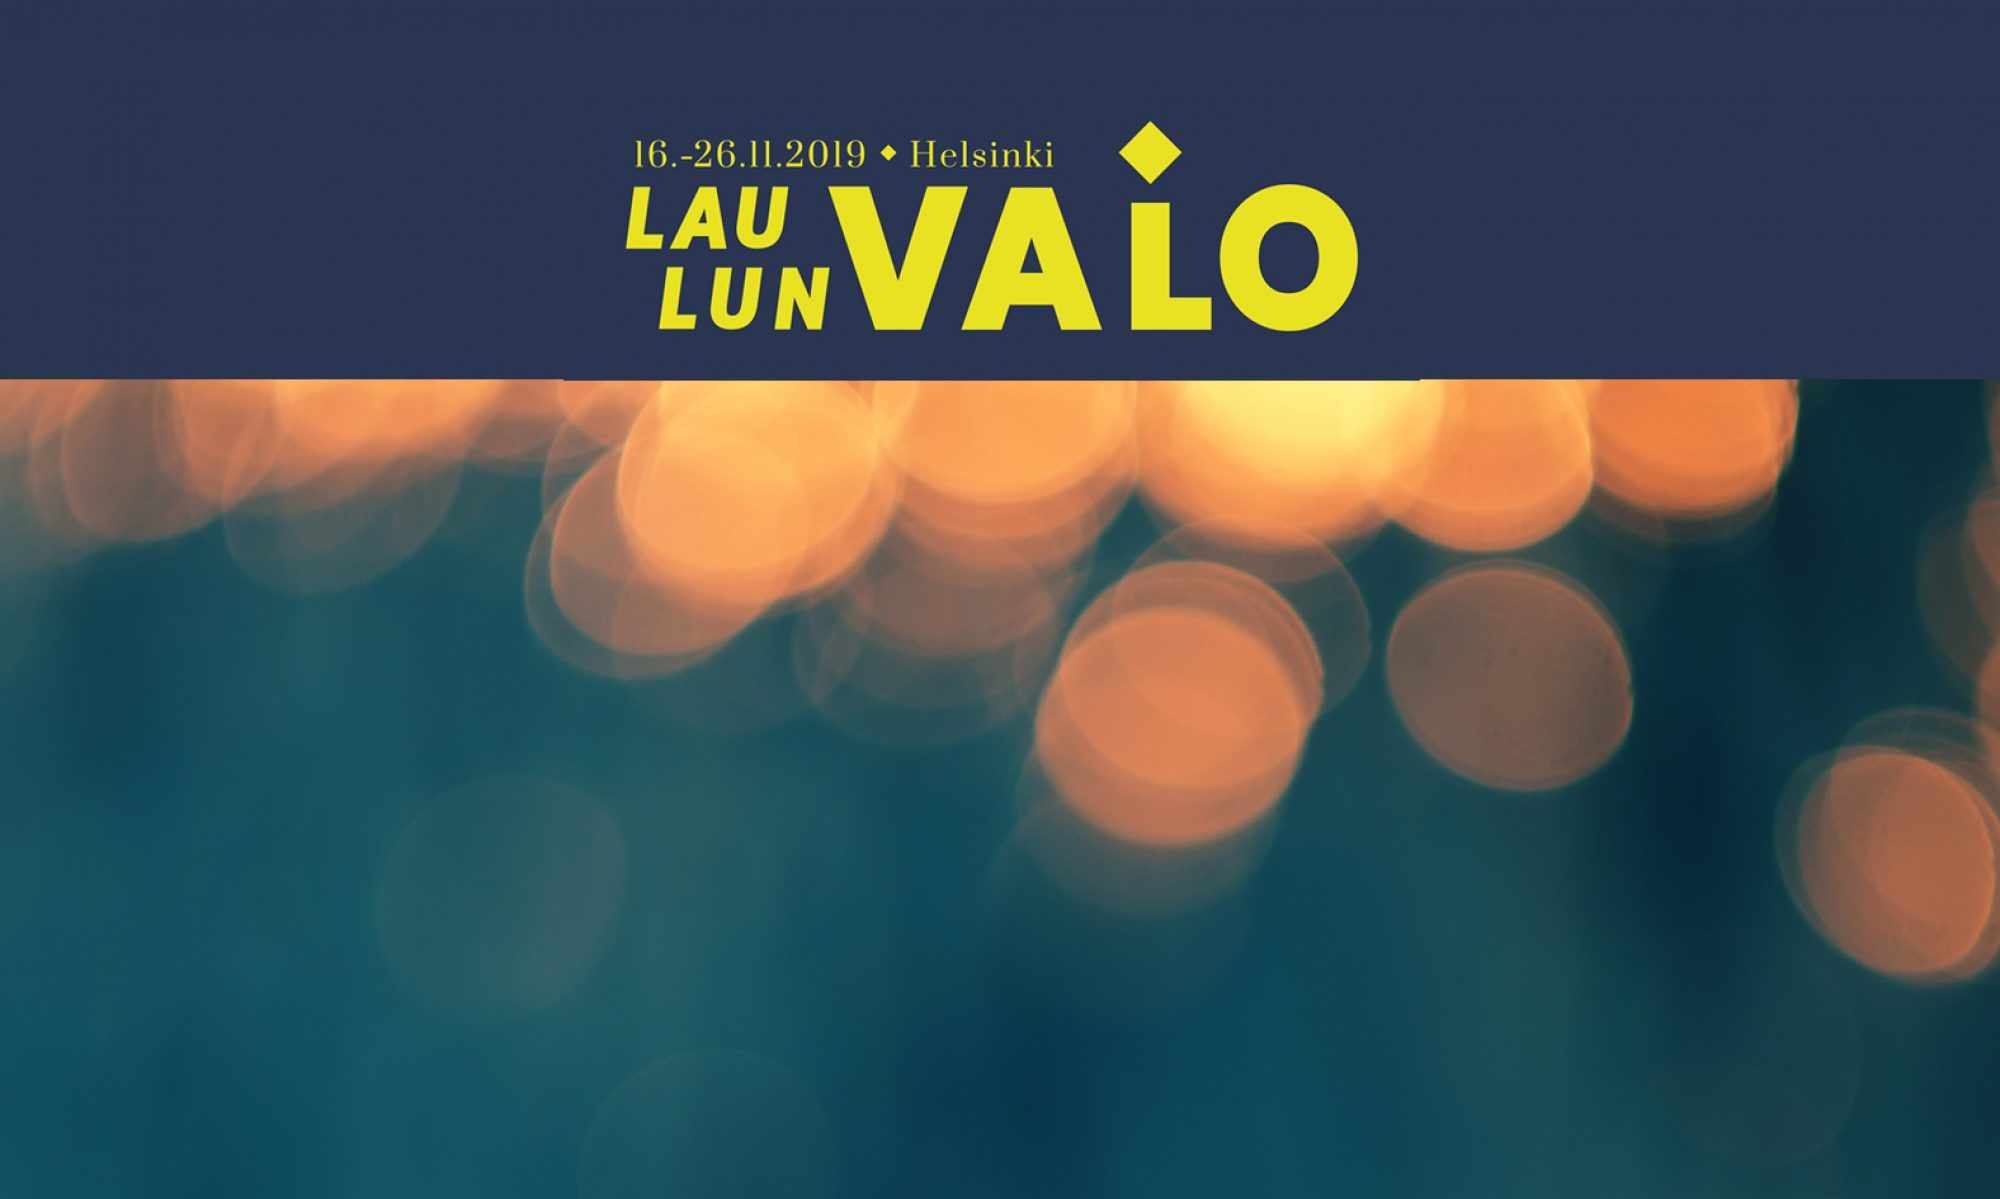 Laulun valo -  The Light of the Lied